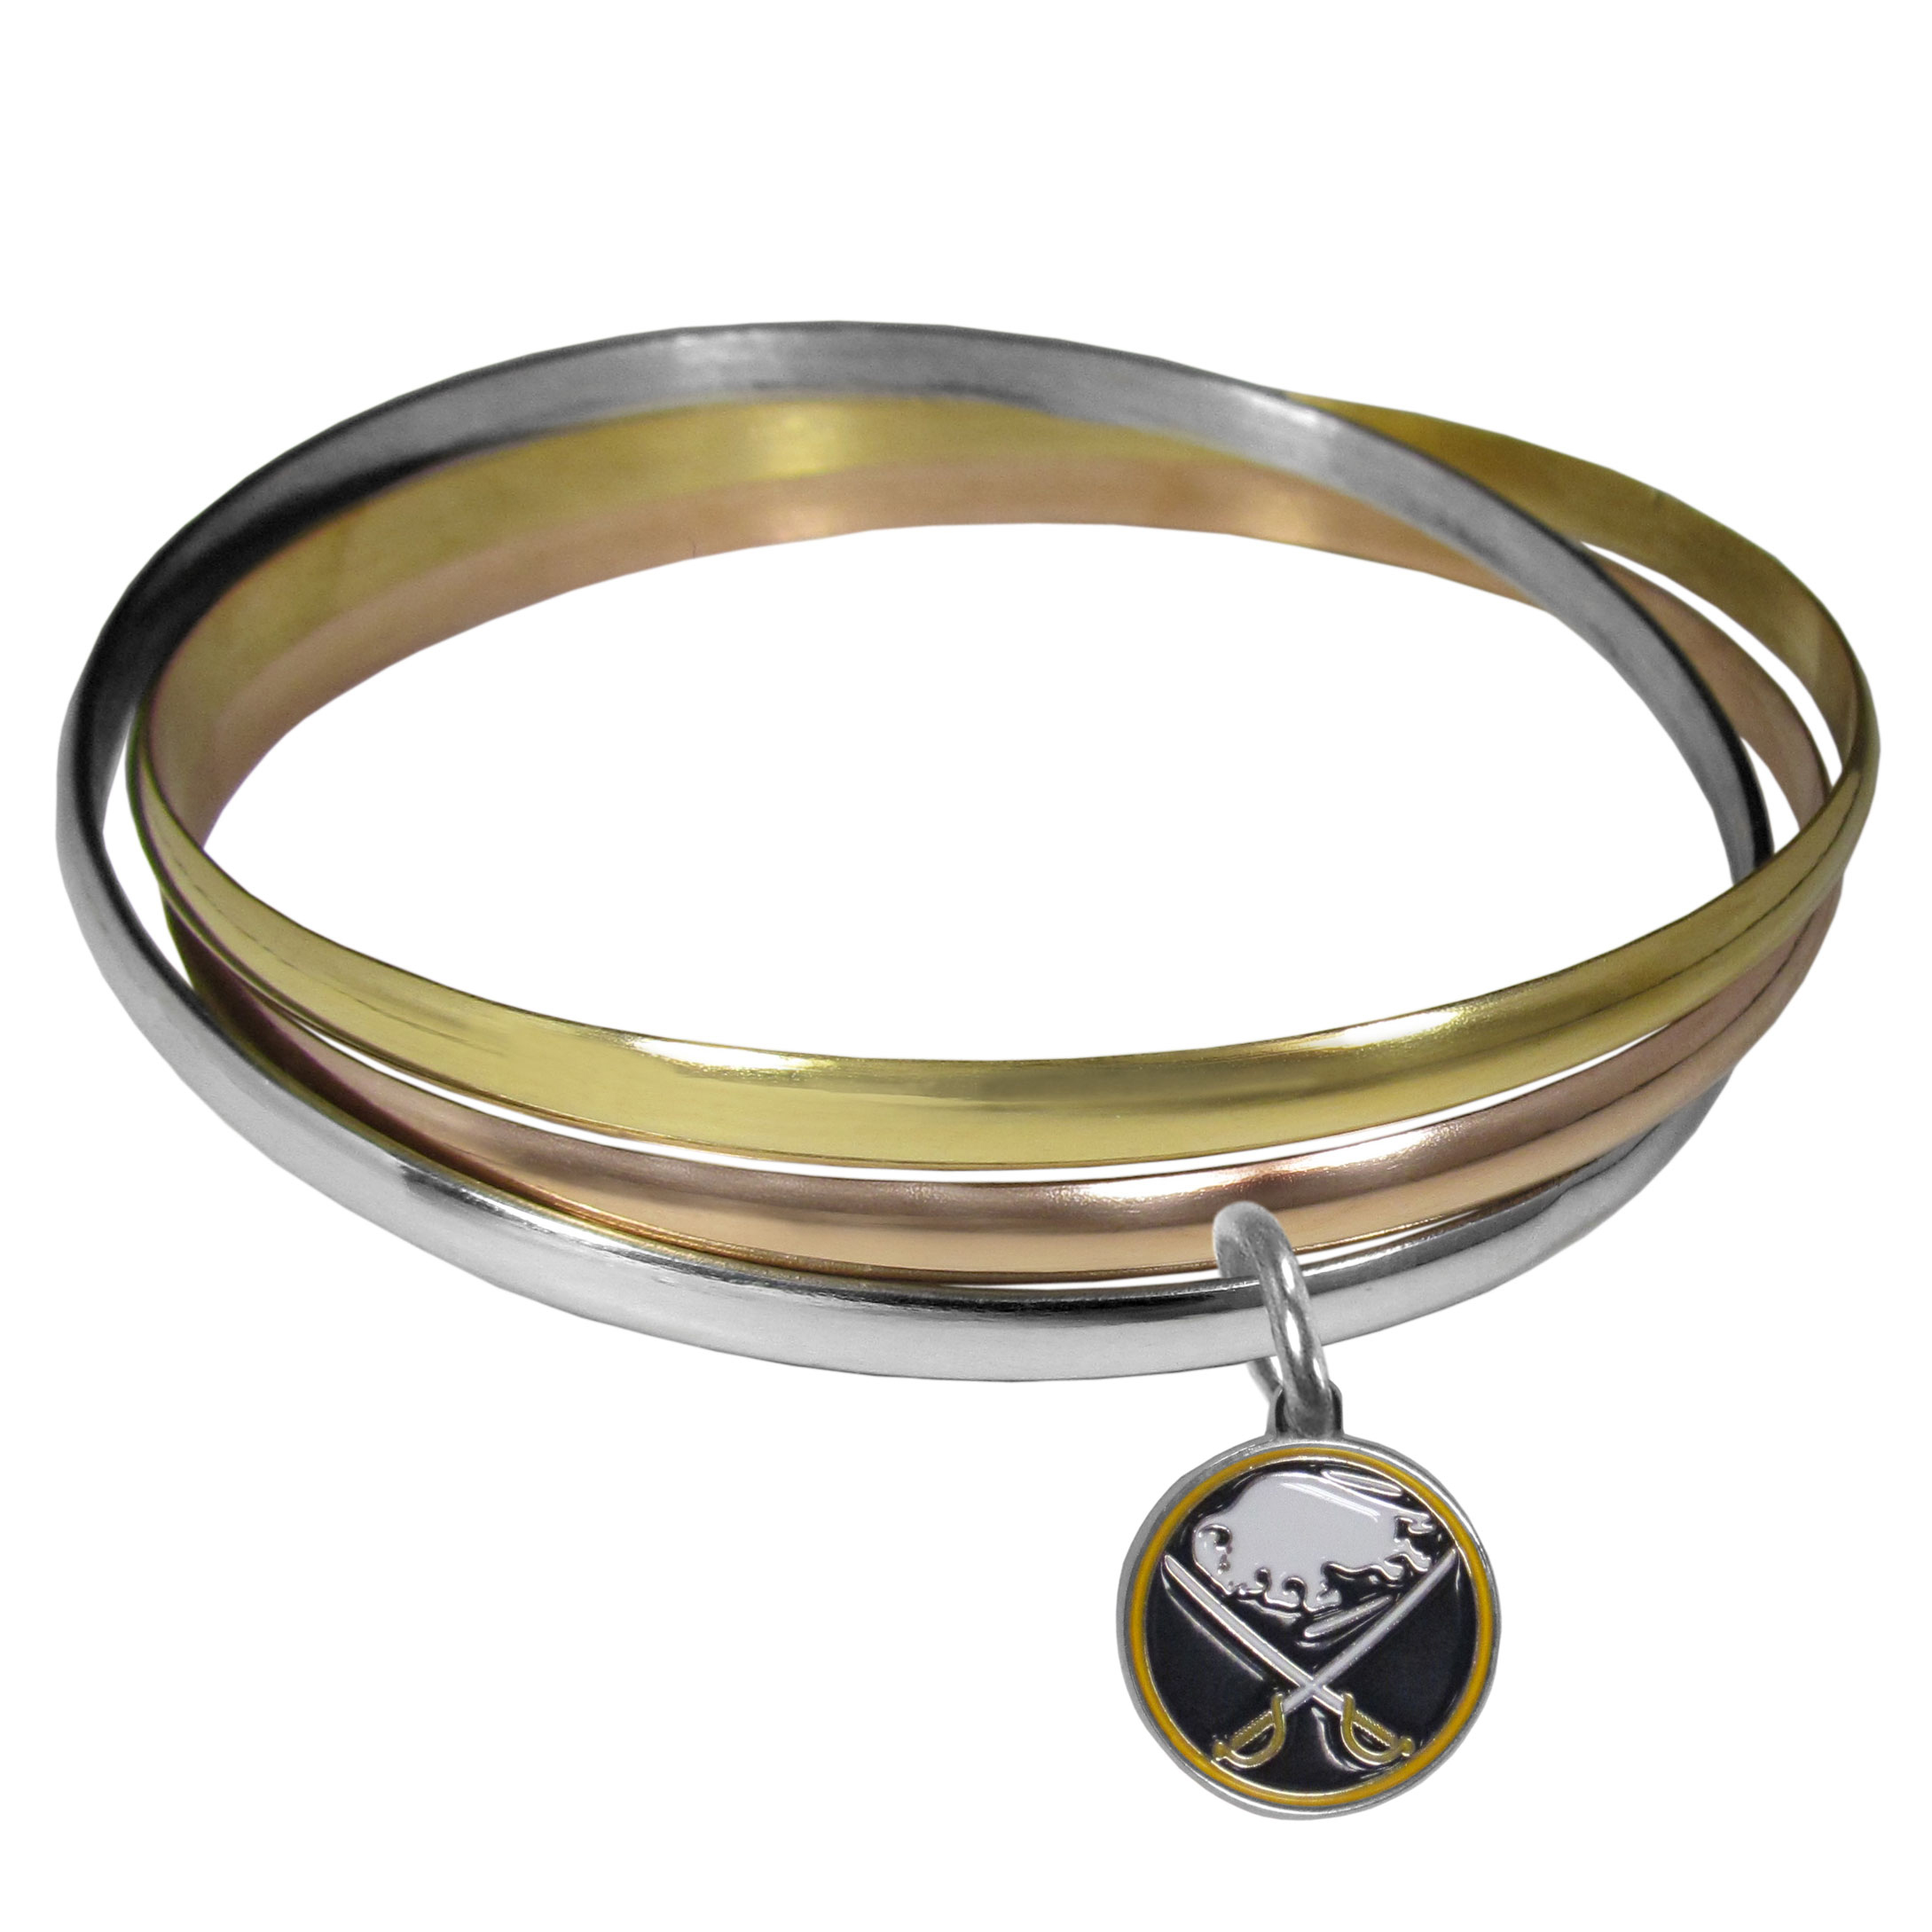 Buffalo Sabres® Tri-color Bangle Bracelet - These beautiful bangles come in a interlocking style and feature a fully cast Buffalo Sabres® charm with enameled team colors. The bracelet has a silver toned bangle, gold tone bangle and brass toned bangle.